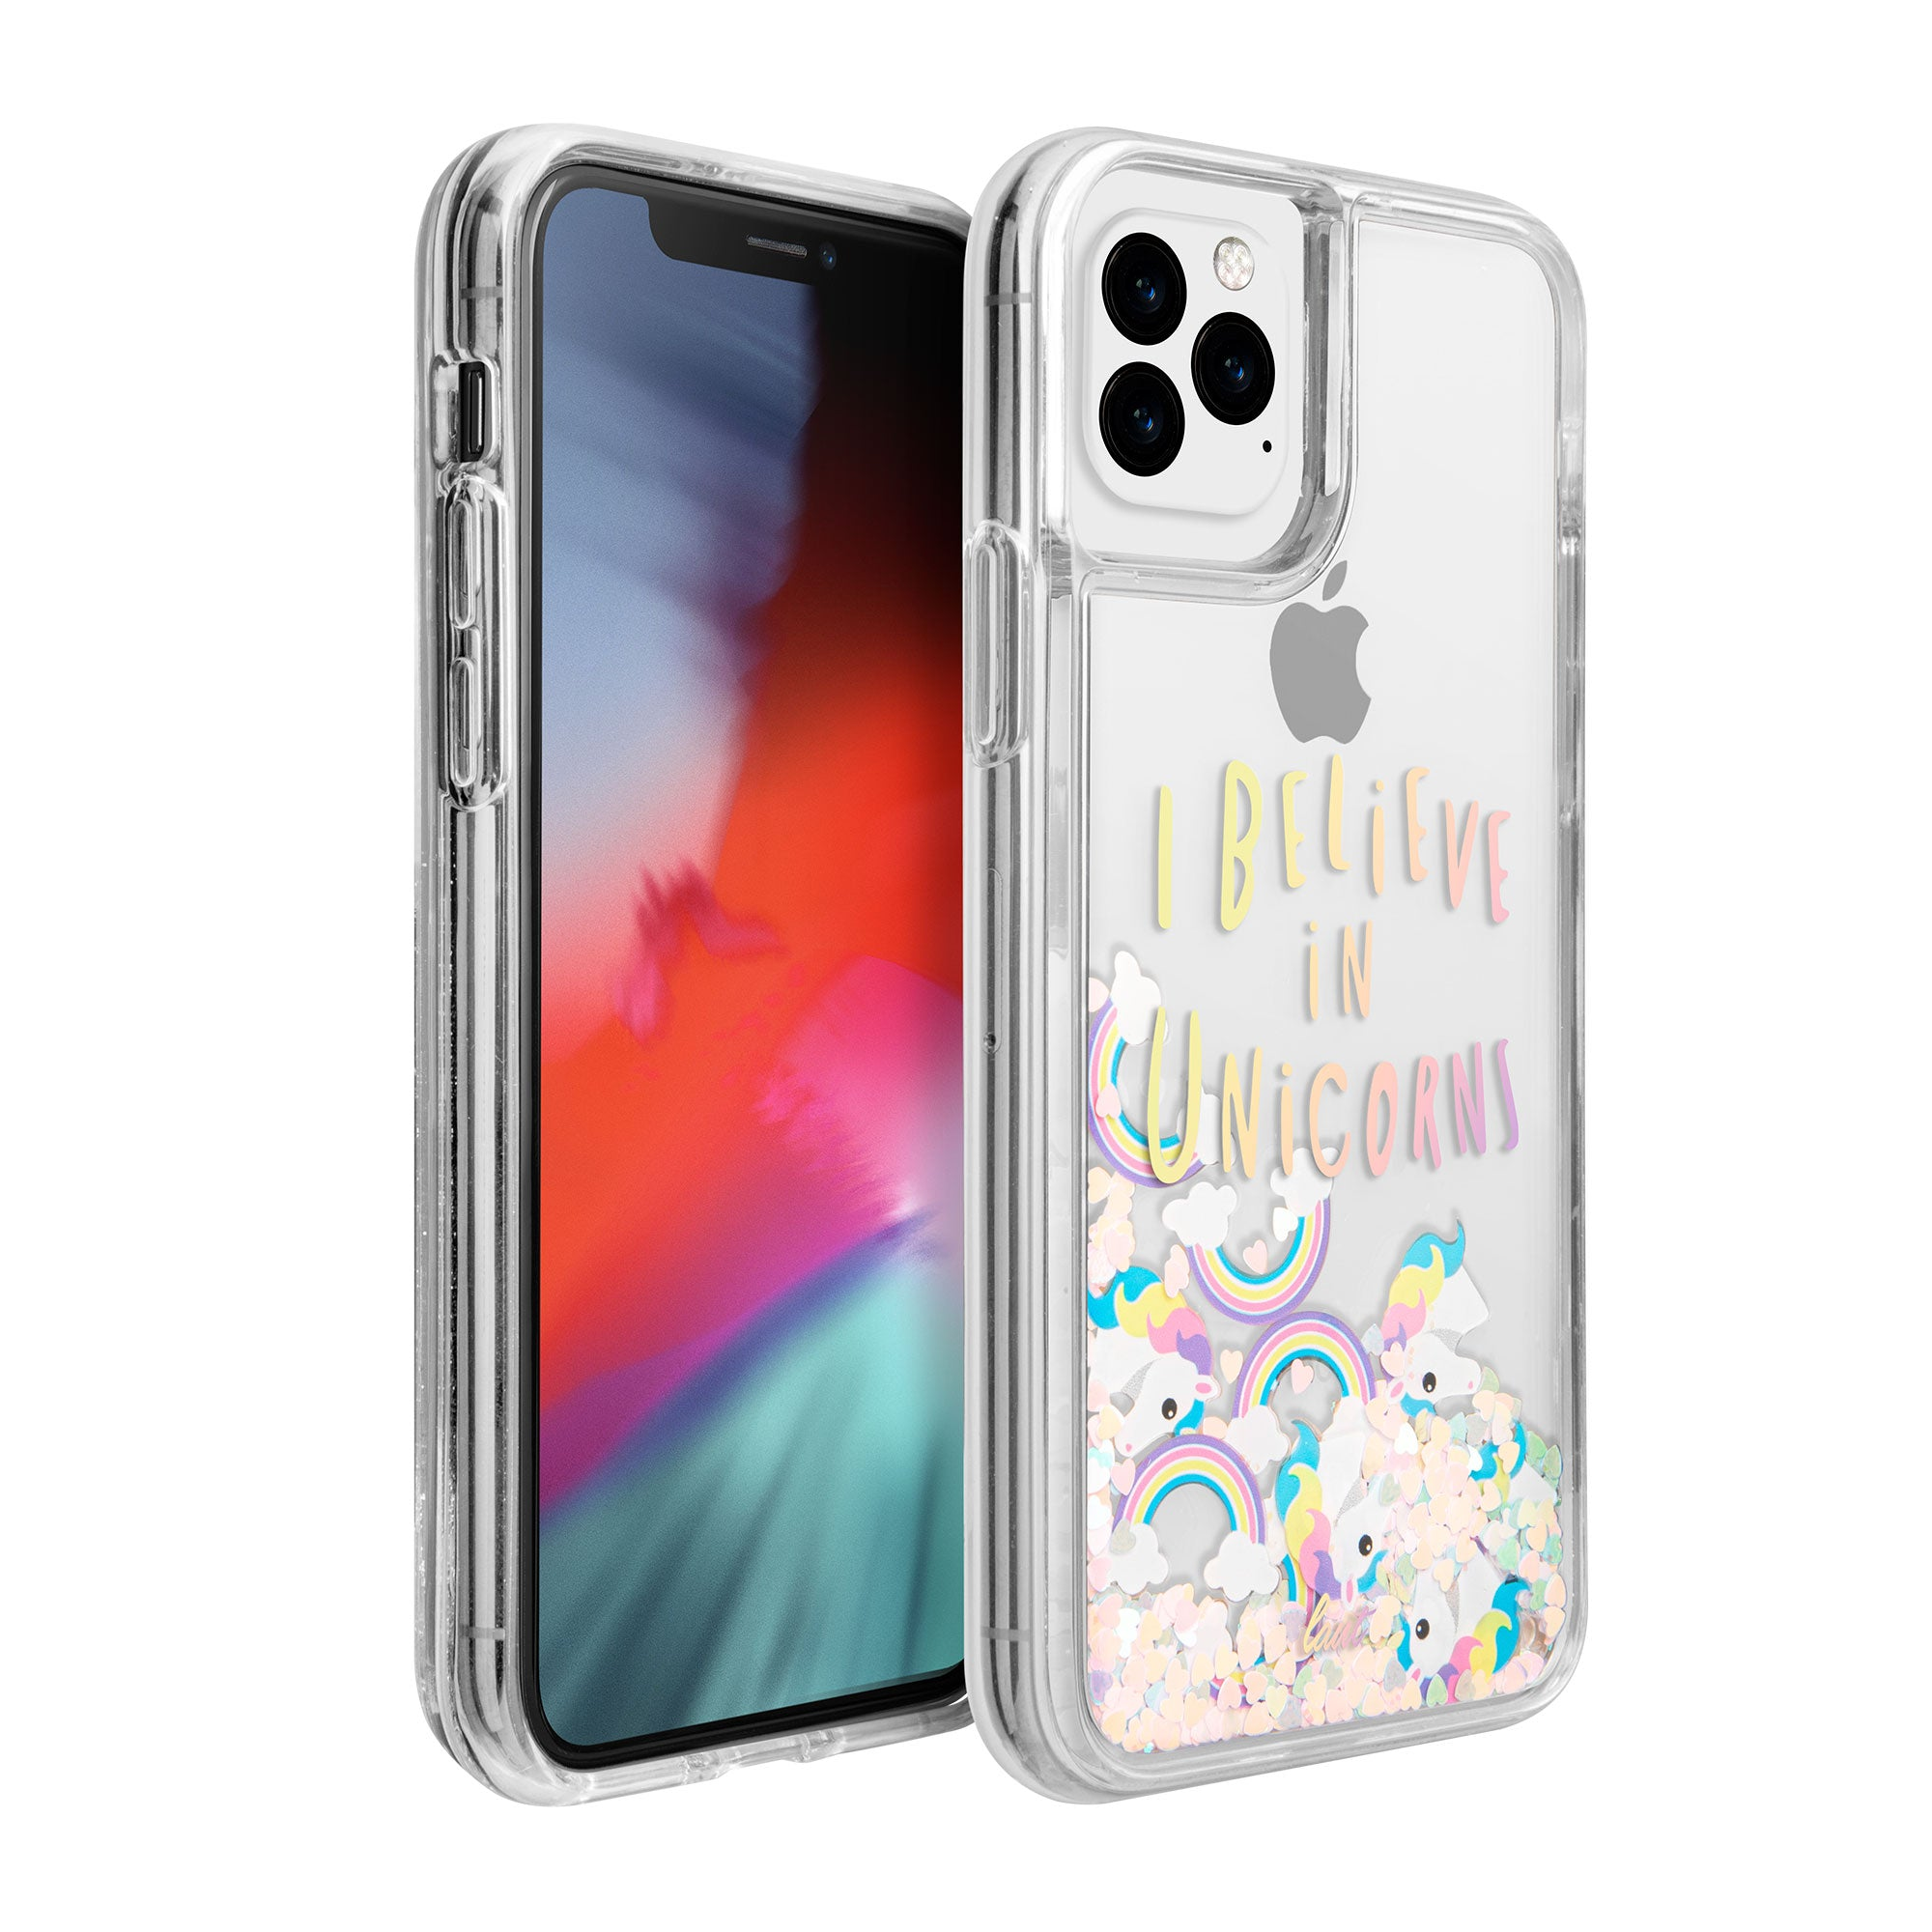 LAUT-GLITTER UNICORNS for iPhone 11 | iPhone 11 Pro | iPhone 11 Pro Max-Case-iPhone 11 / iPhone 11 Pro / iPhone 11 Pro Max